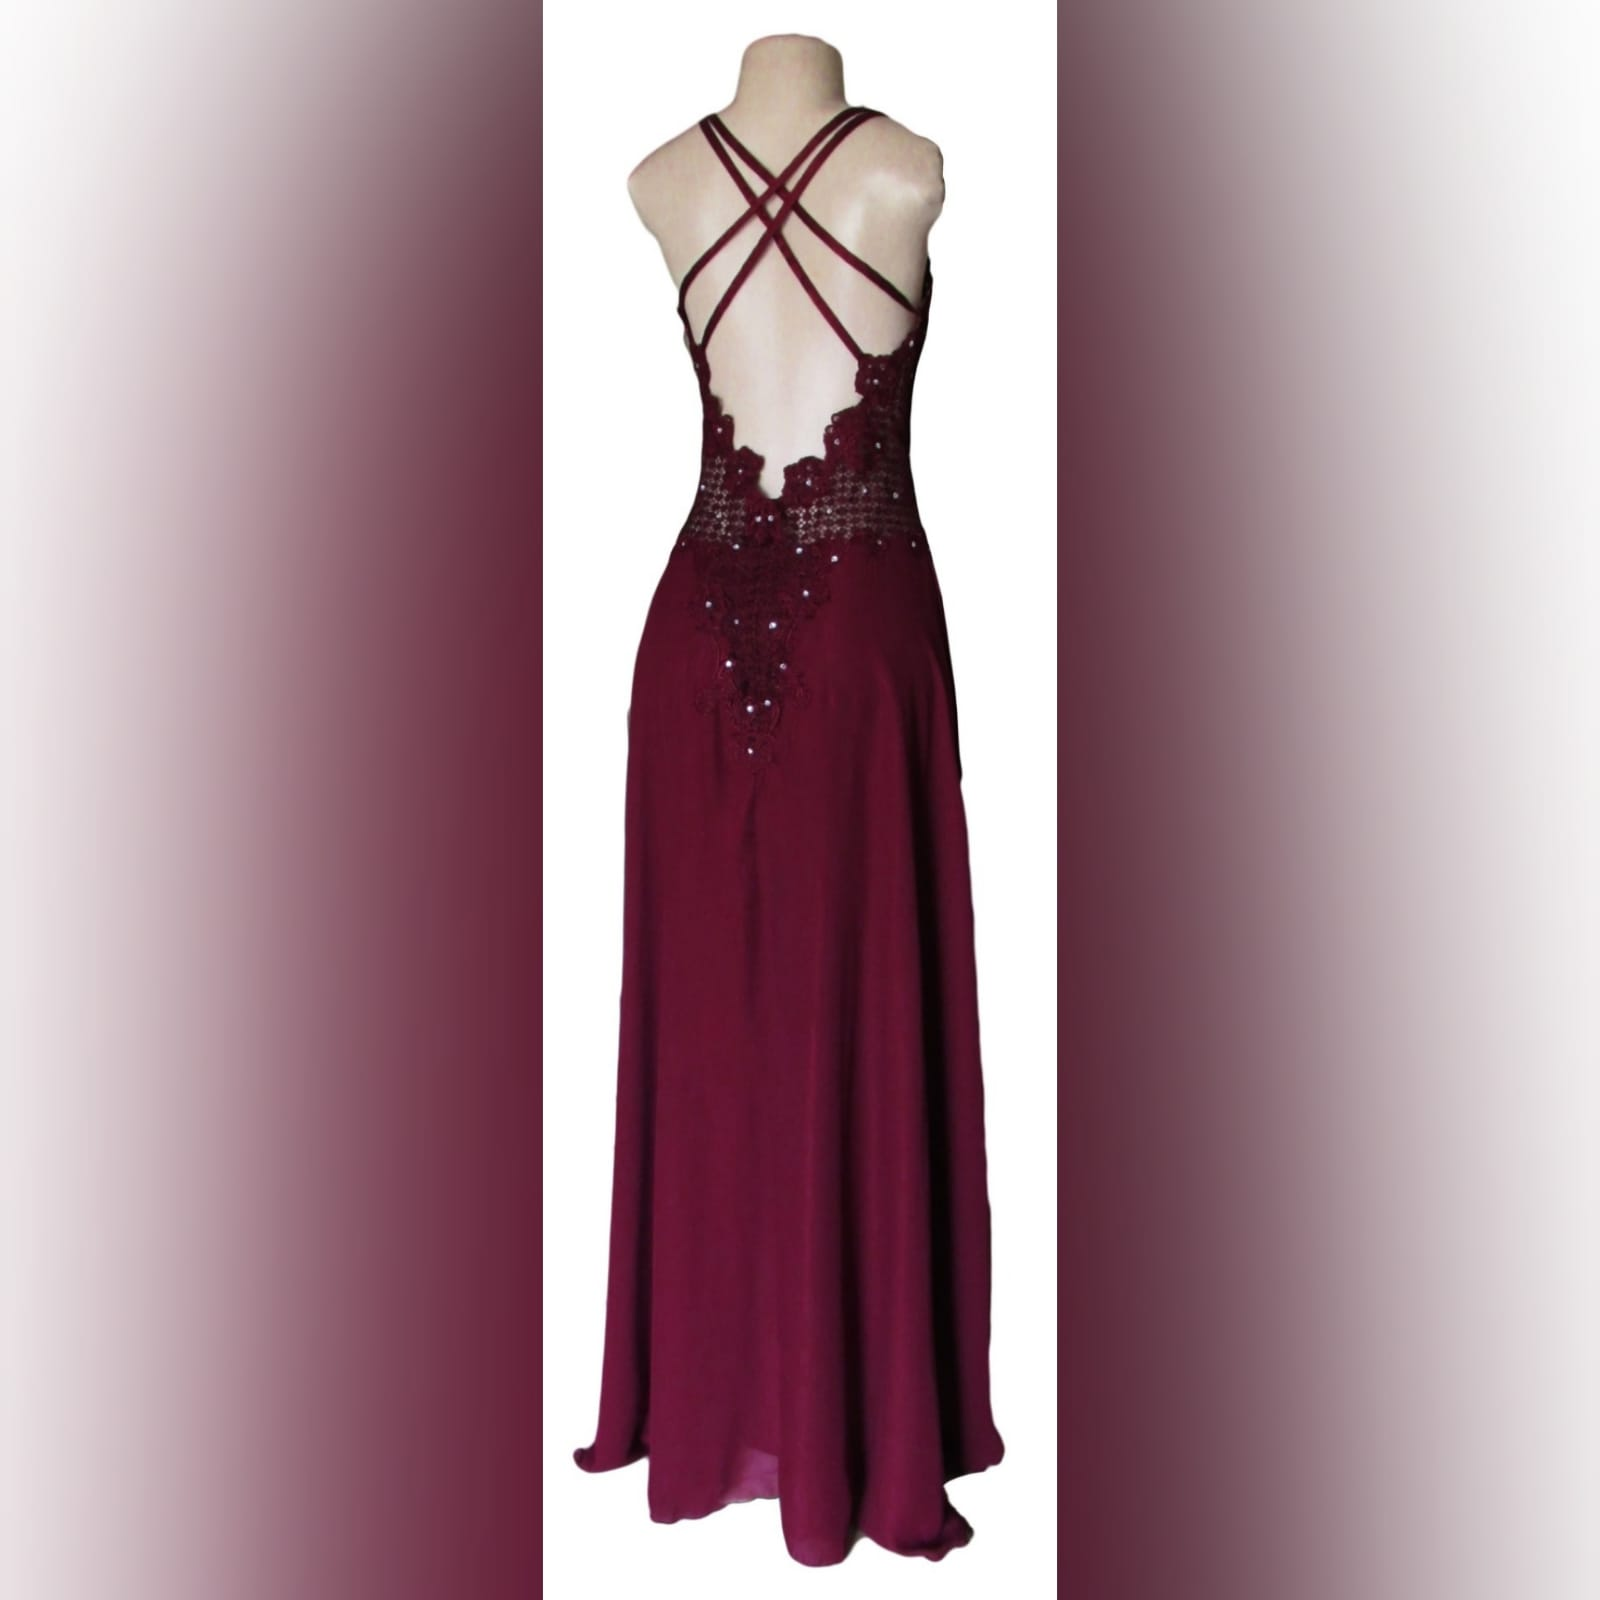 Burgundy chiffon and lace prom dress 8 burgundy chiffon and lace prom dress. Bodice in lace, with a v neckline and v low open back, with double shoulder crossed straps. Bodice detailed with silver beads. Bottom in flowy chiffon with a slit.